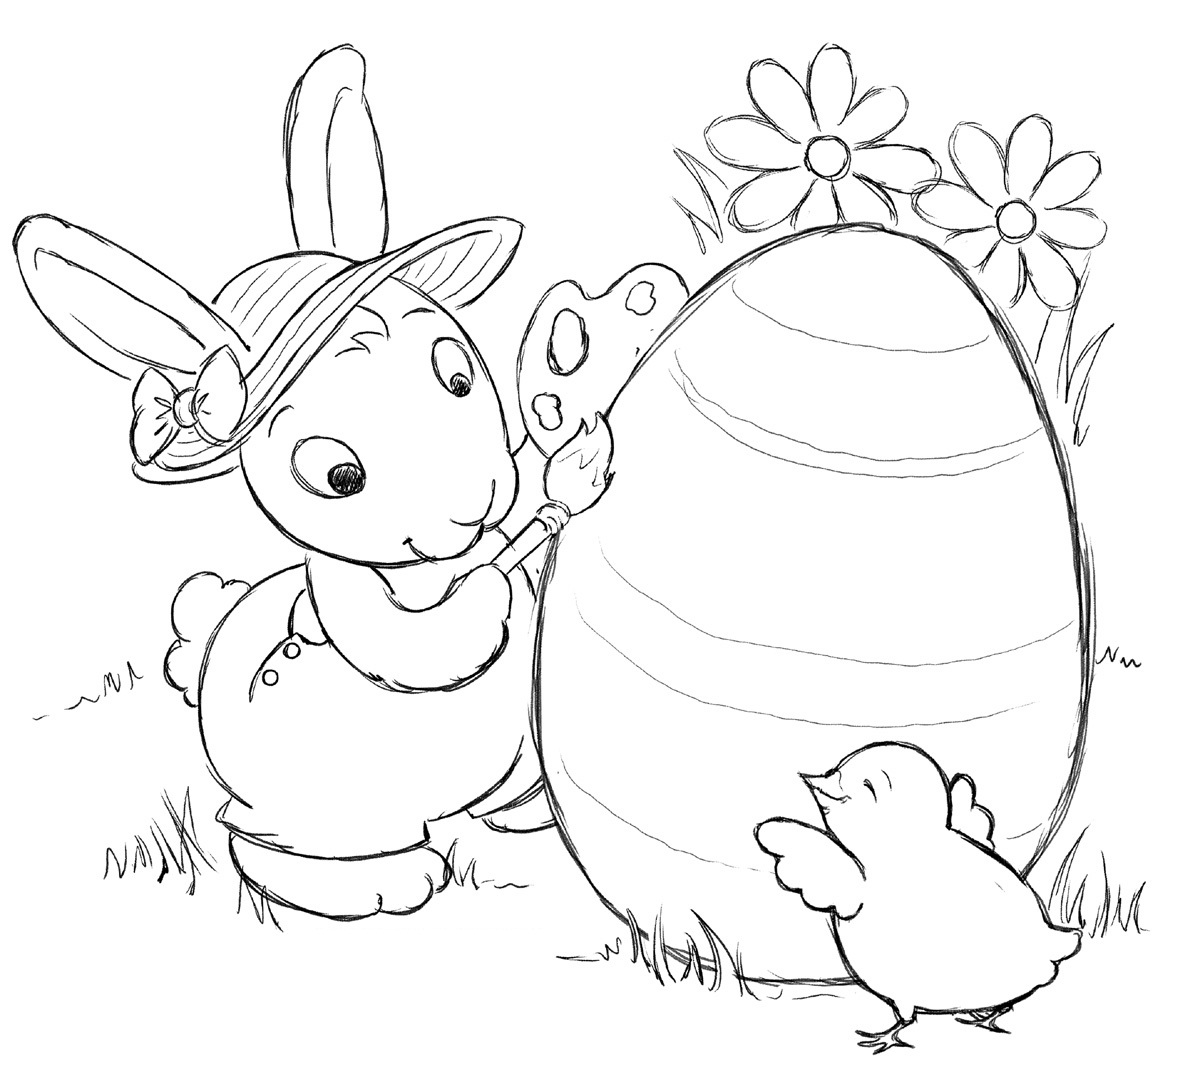 Coloring pages bunny - Coloring Pages Of Easter Bunny